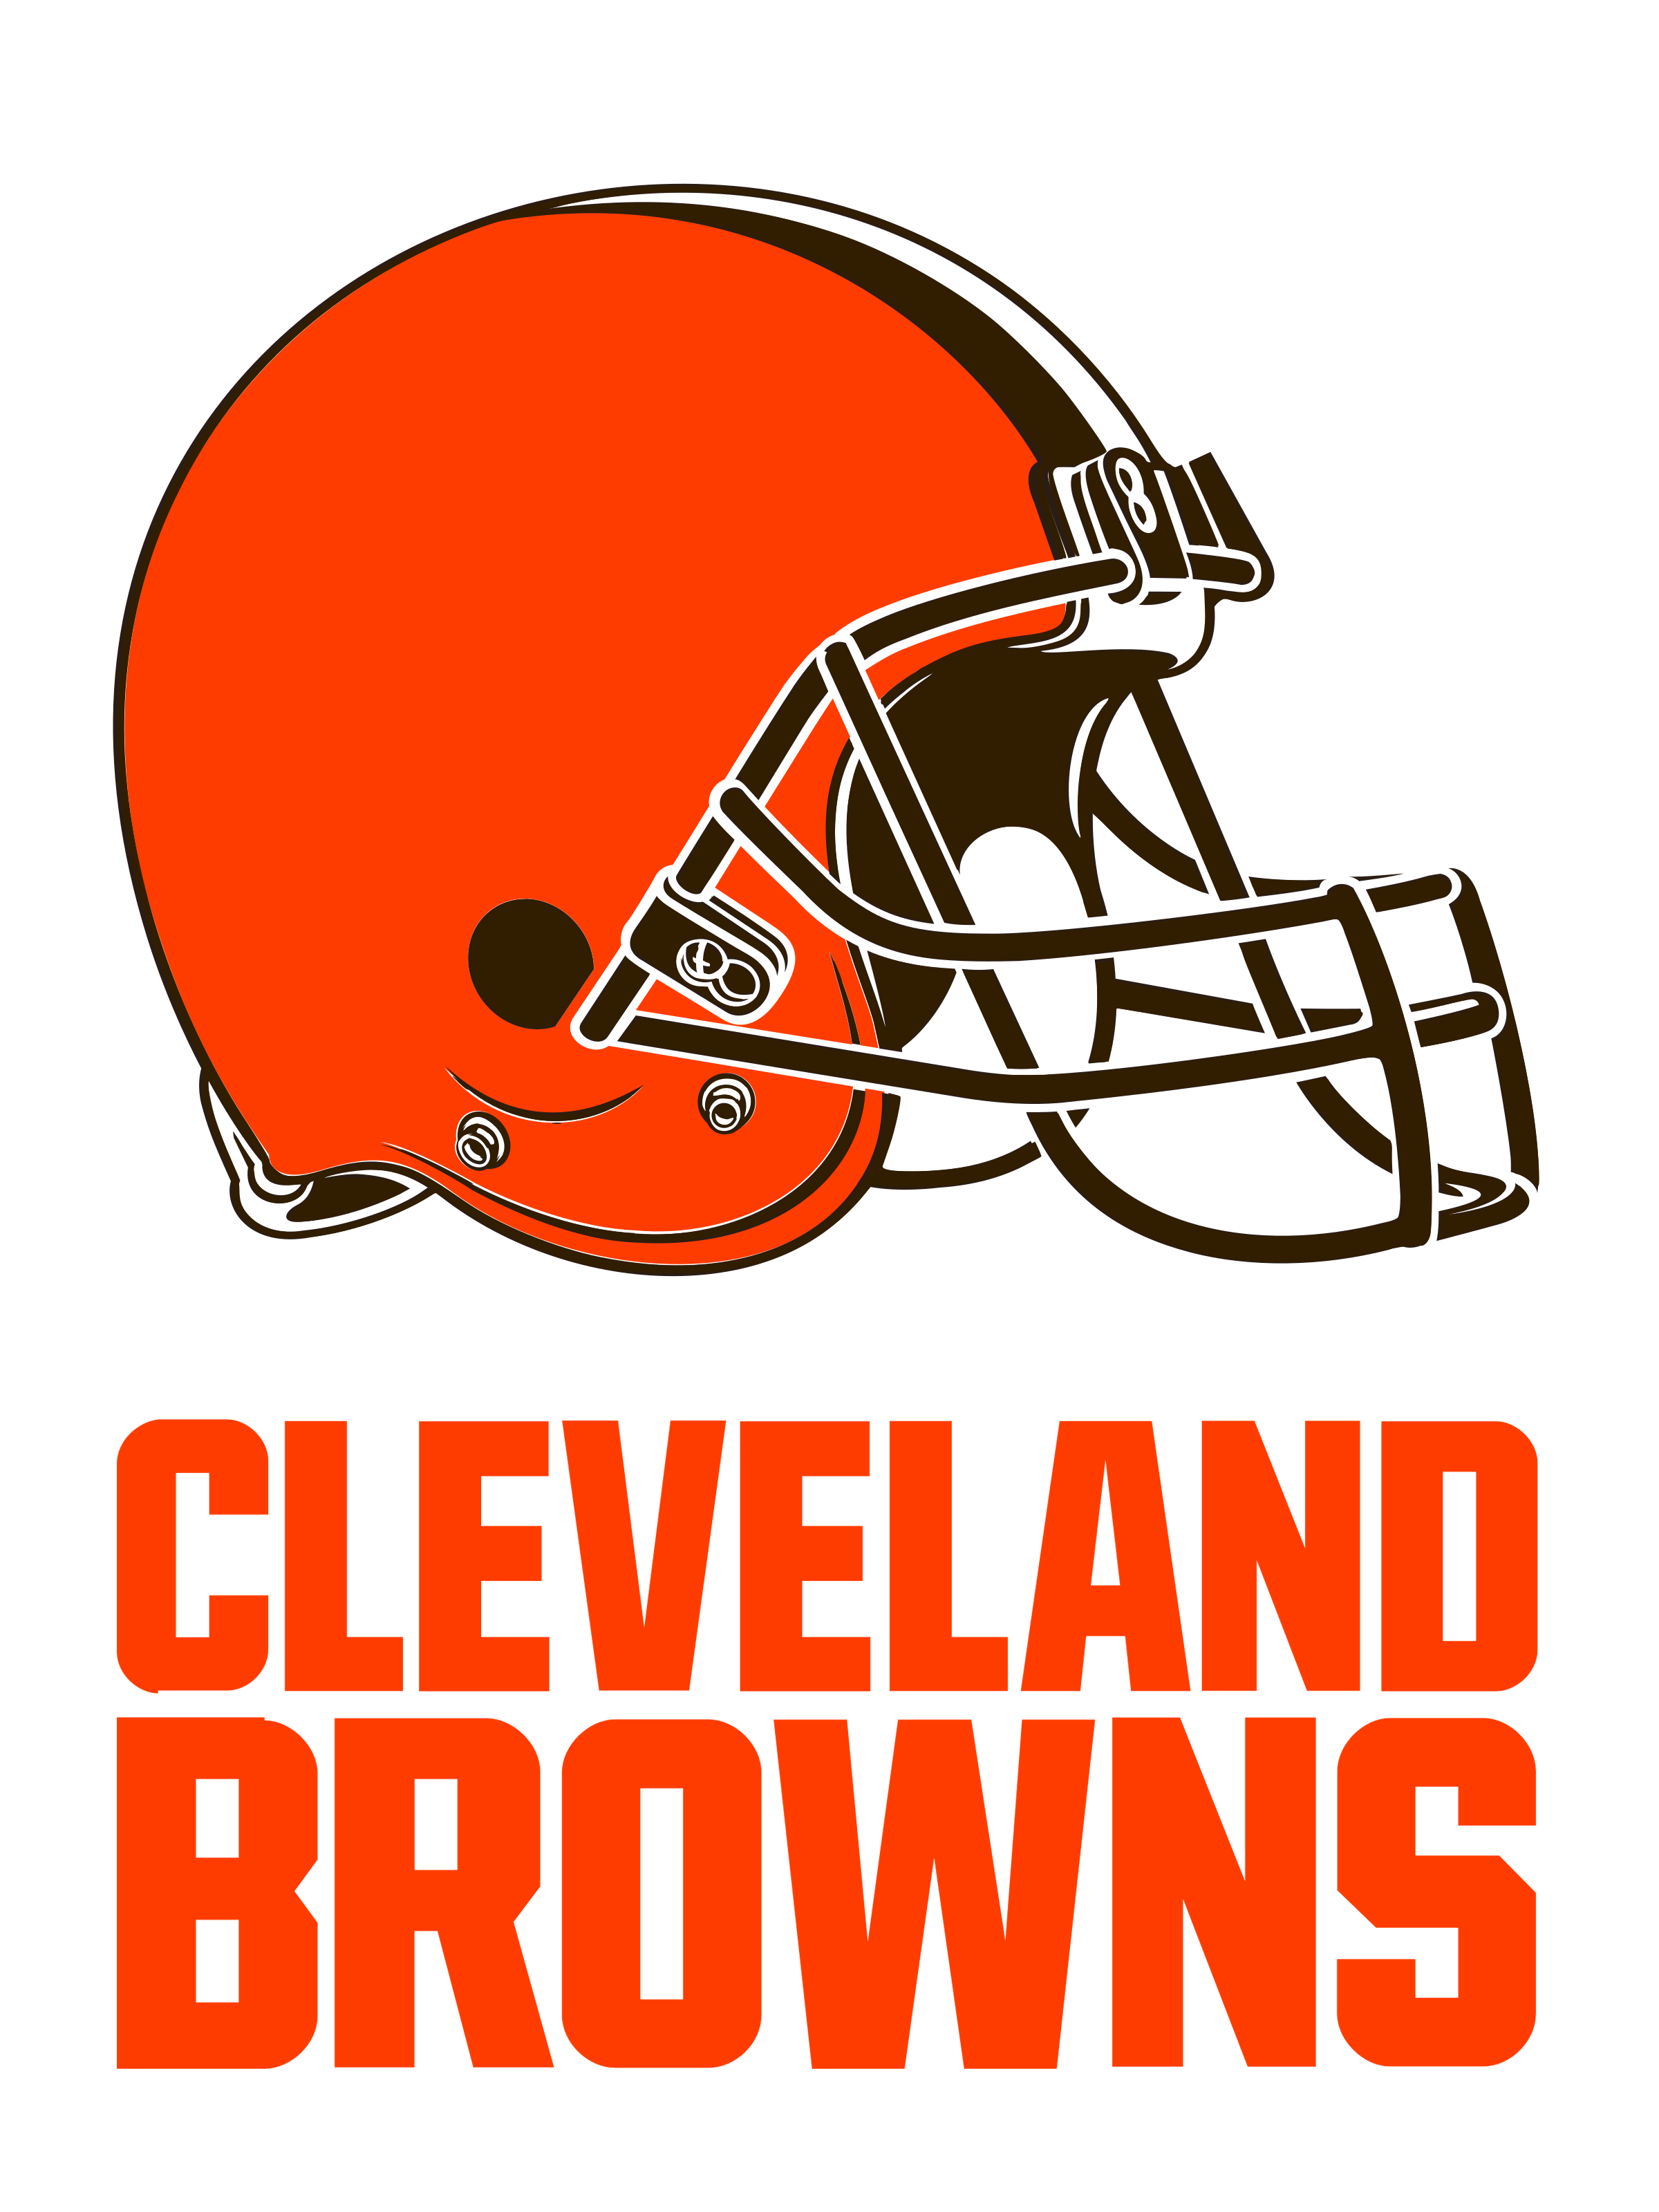 Cleveland Browns football logo - Cleveland Browns Vector PNG